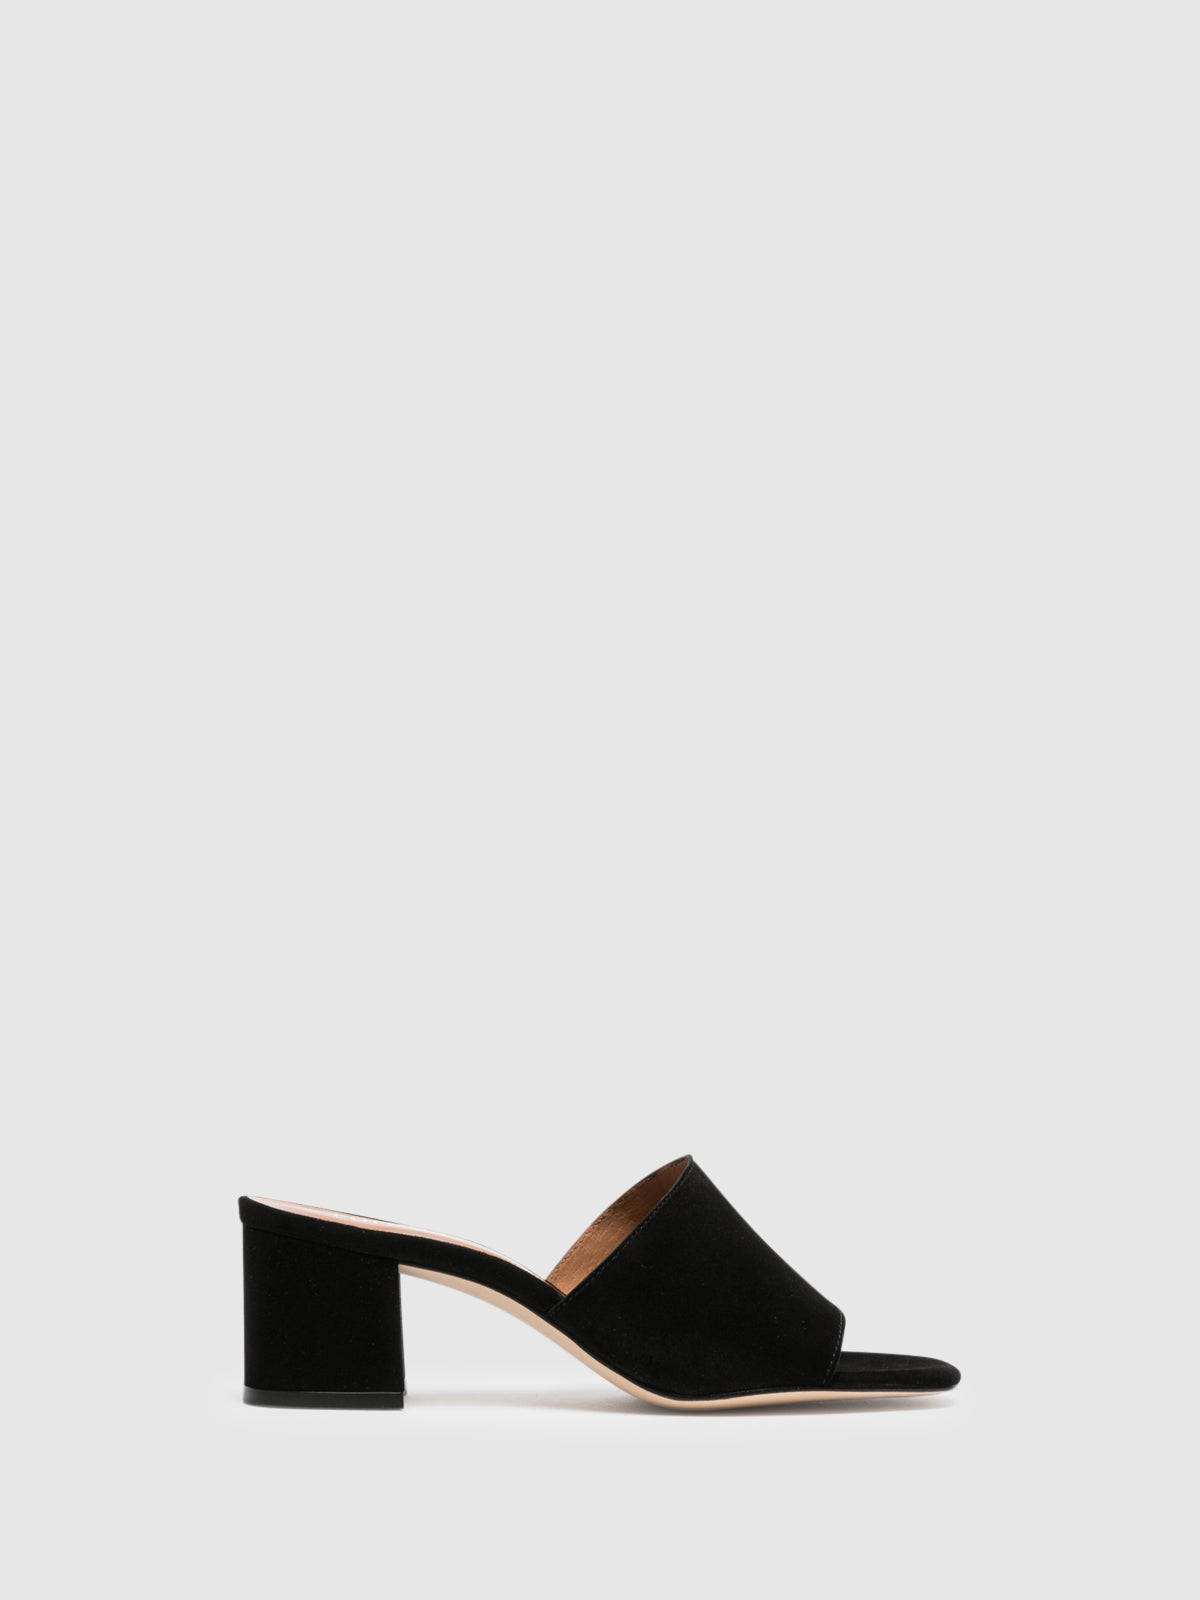 Foreva Black Open Toe Mules